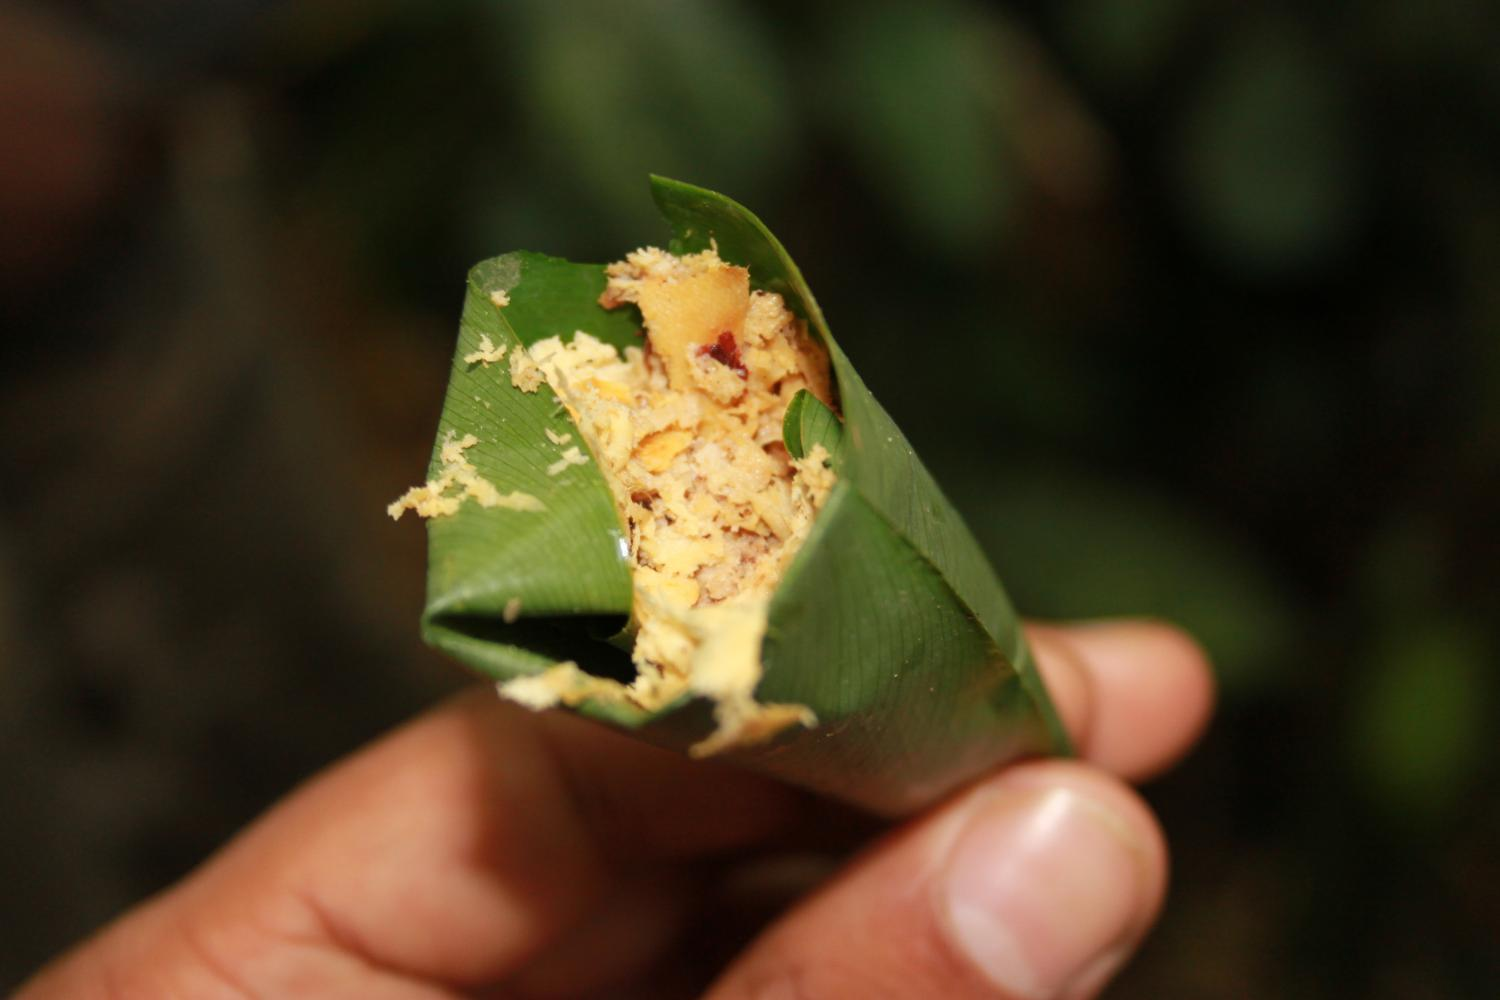 Tracing The Path Of Pygmies Shared Knowledge Of Medicinal Plants